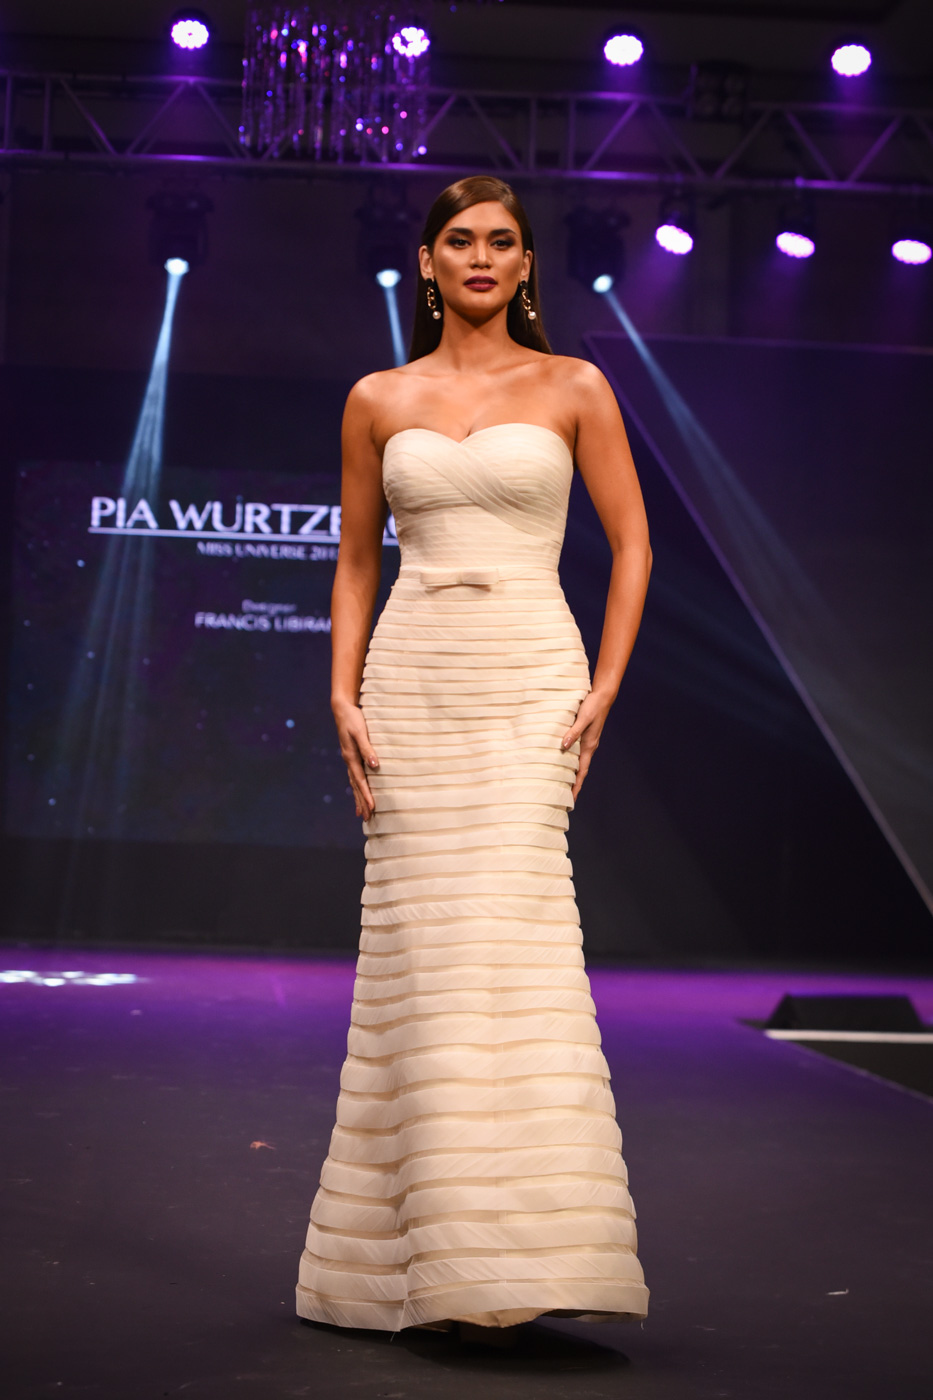 Miss Universe 2015 Pia Wurtzbach in a white gown by Francis Libiran